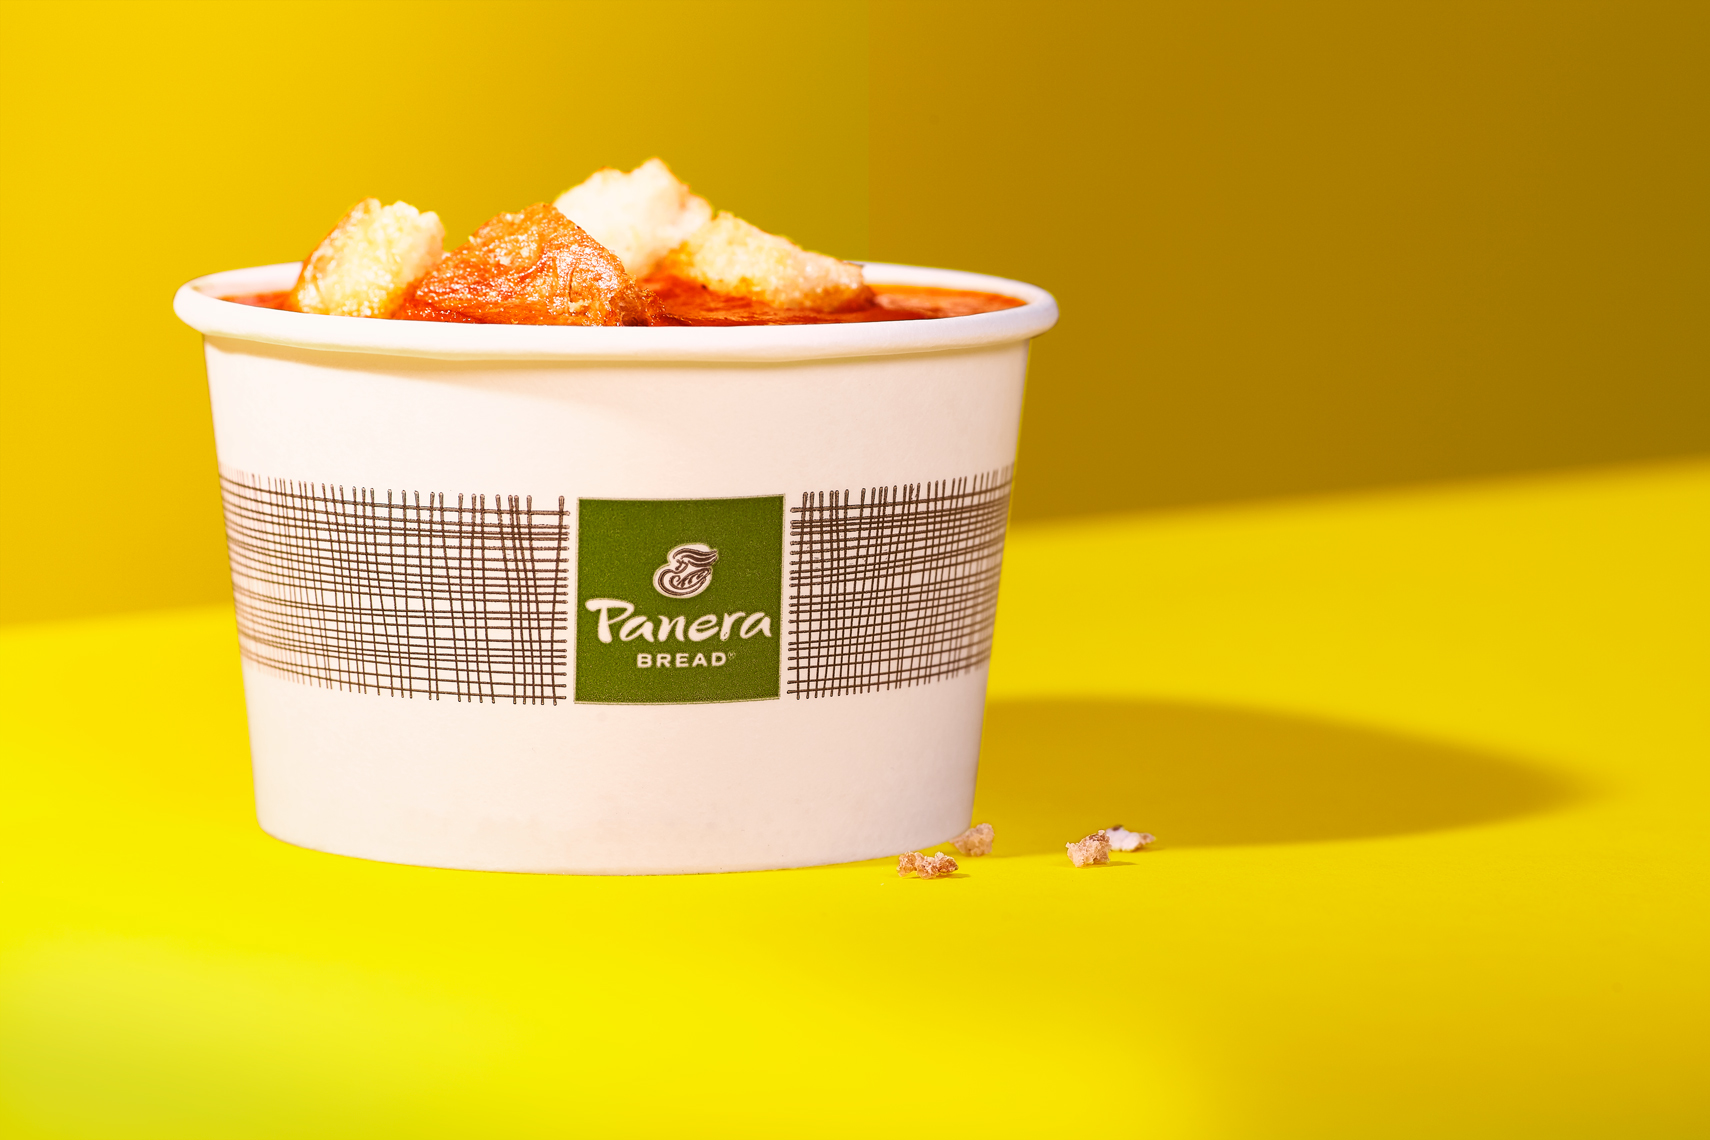 Panera-Bread-Tomato-Soup-Crouton-Bowl-Yellow